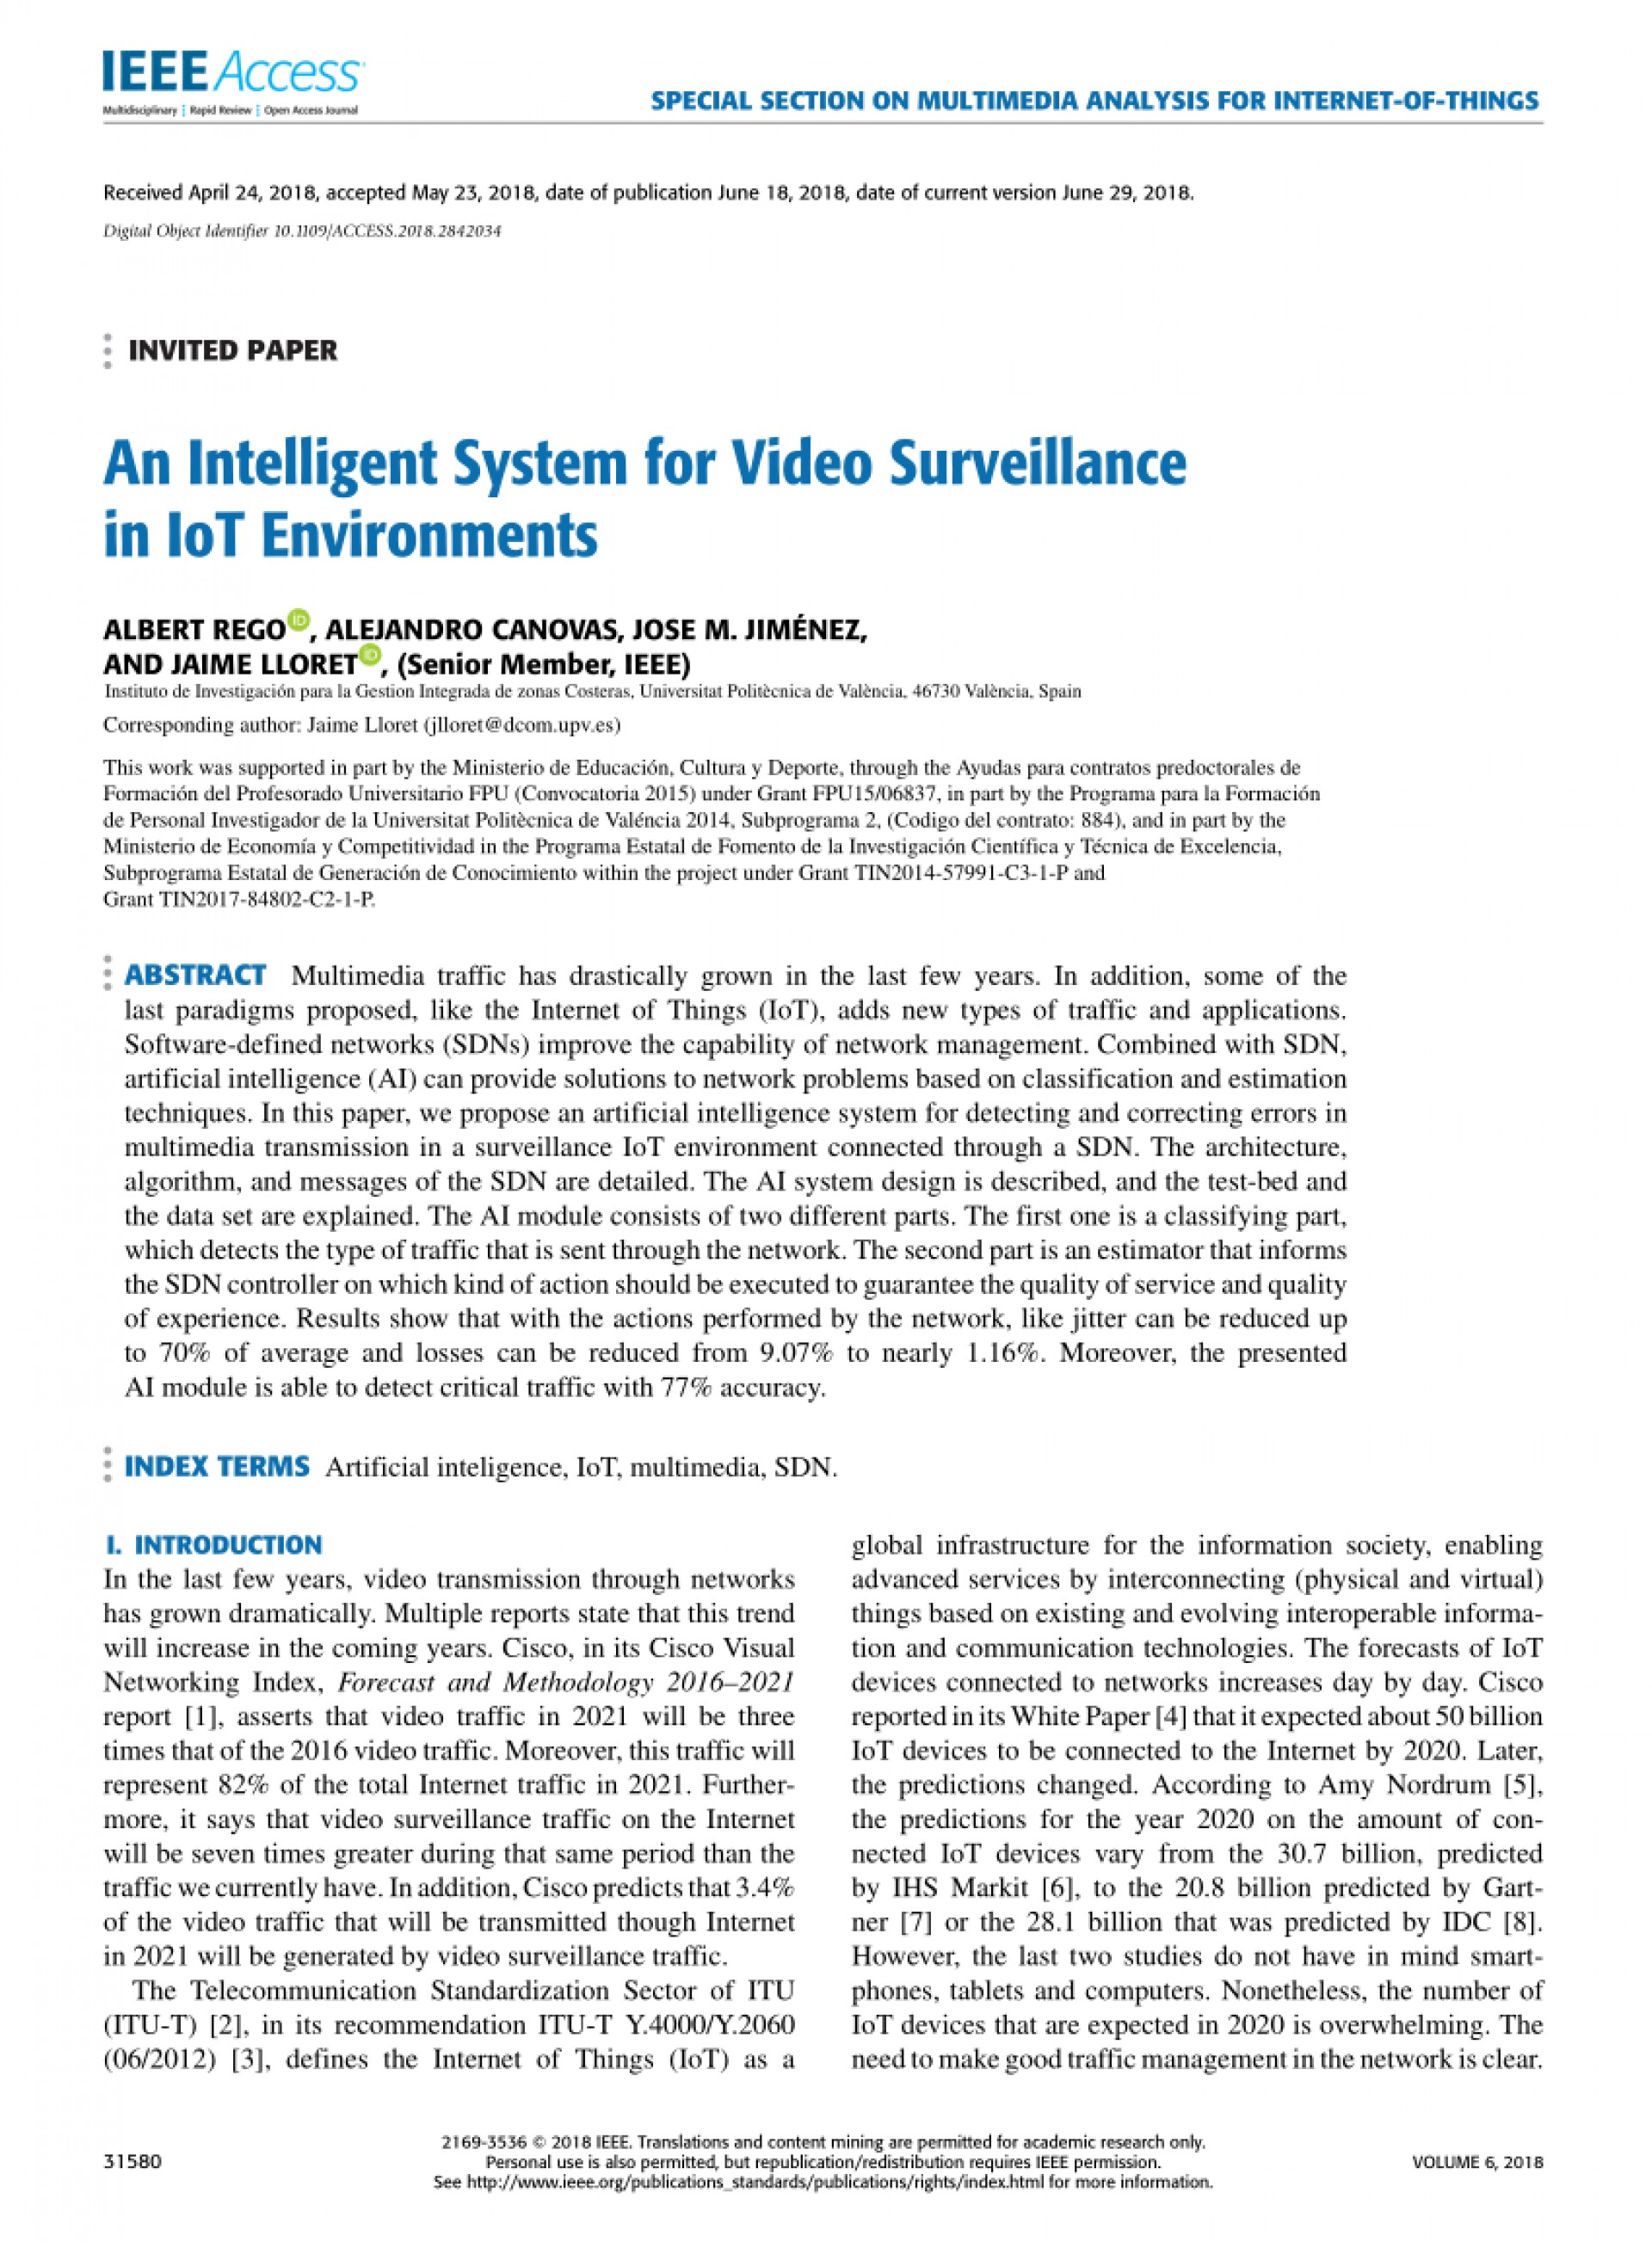 002 Latest Ieee Research Papers On Artificial Intelligence Paper Unforgettable Pdf 1920